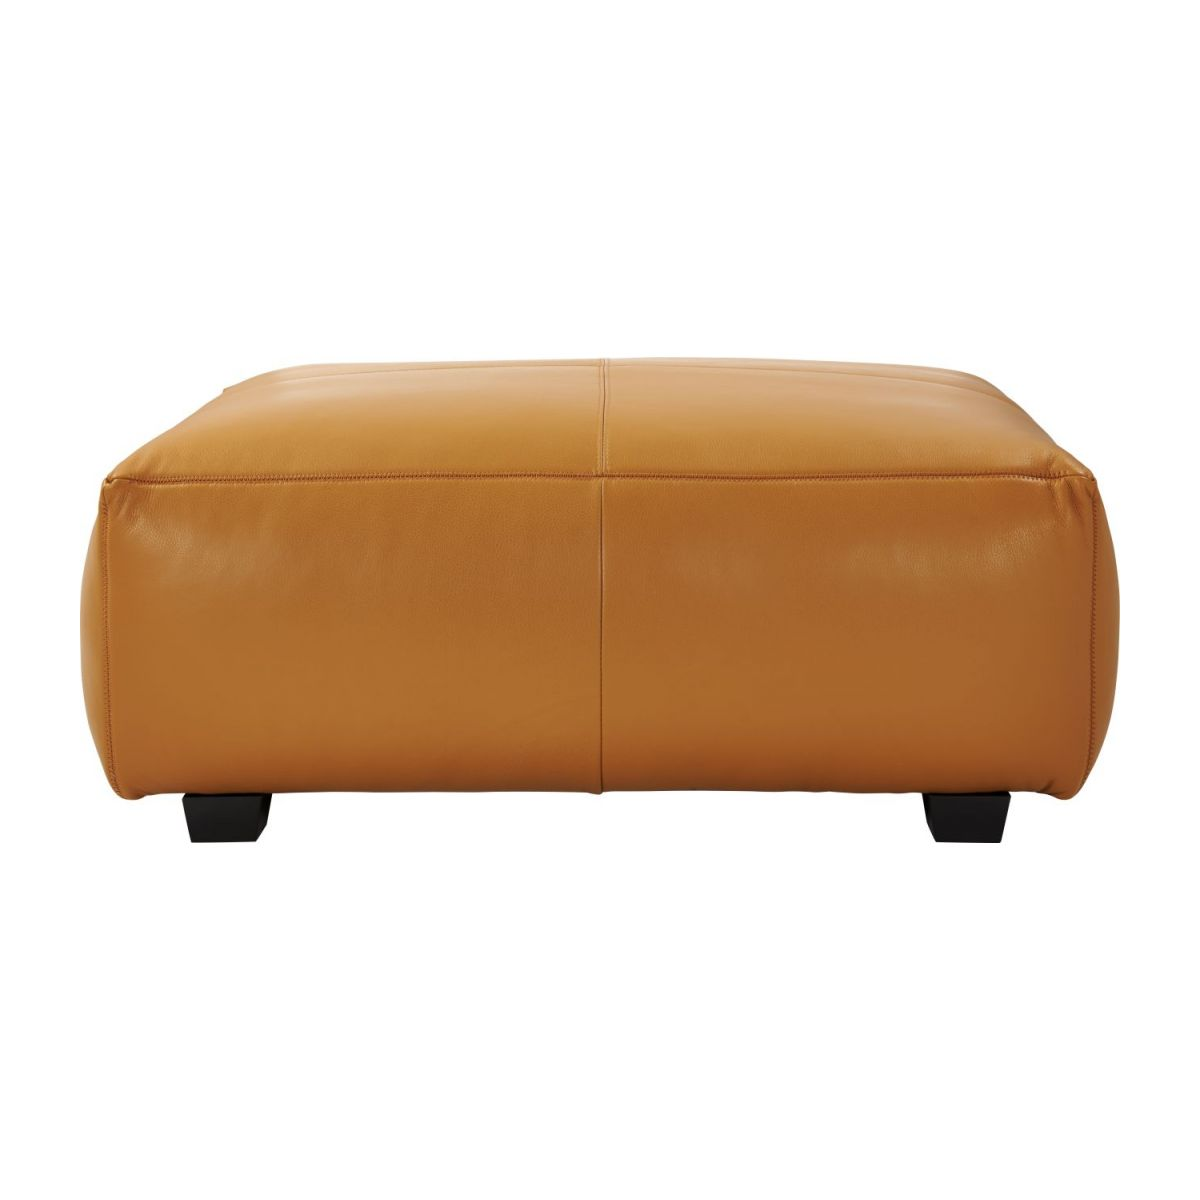 Footstool in Savoy semi-aniline leather, cognac n°3